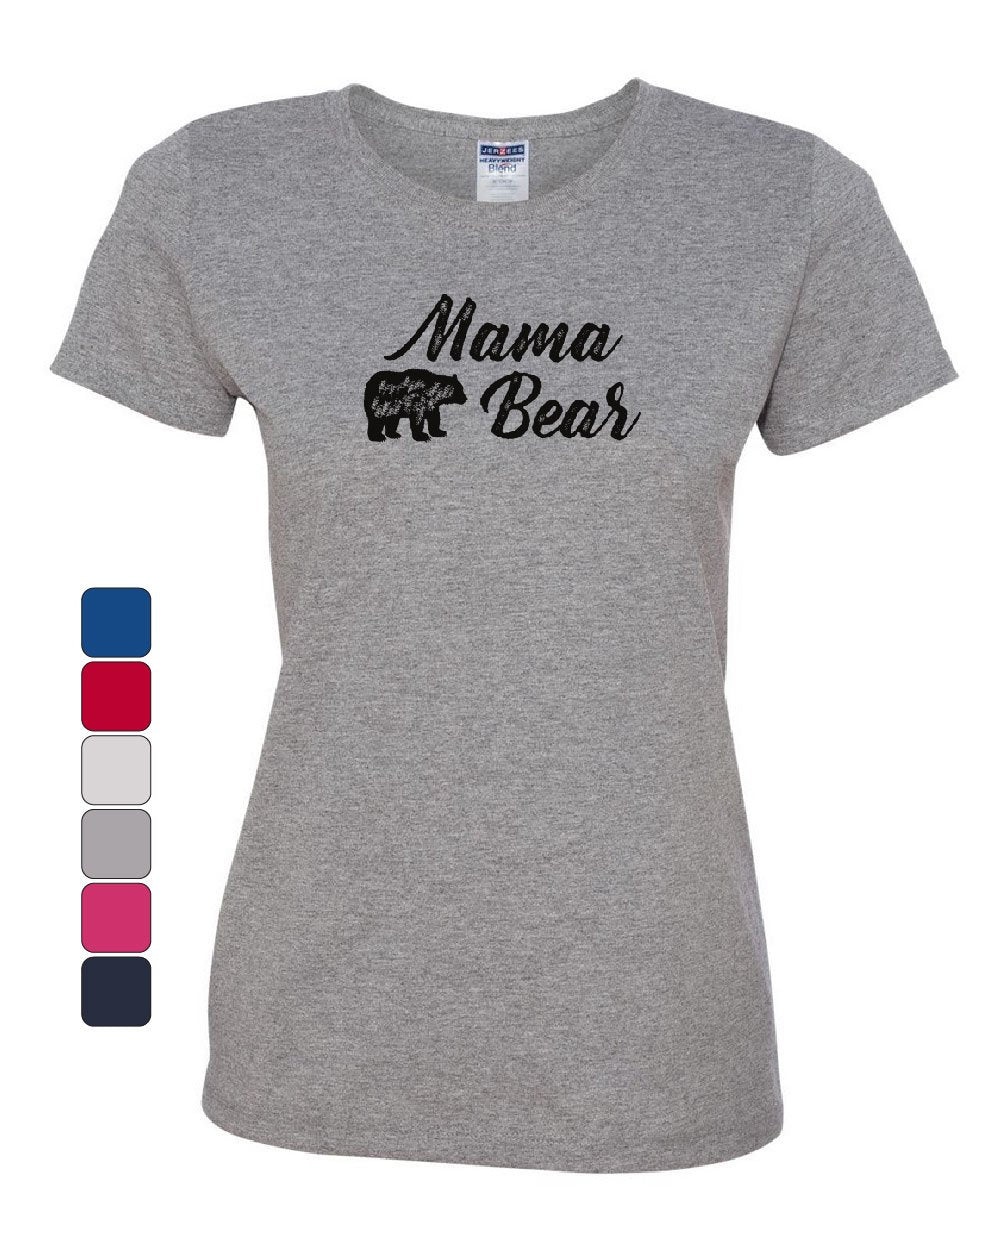 64fbe1906af Product Image Mama Bear Women s T-Shirt Mom Mother s Day Family Cute  Camping Tourism Tee